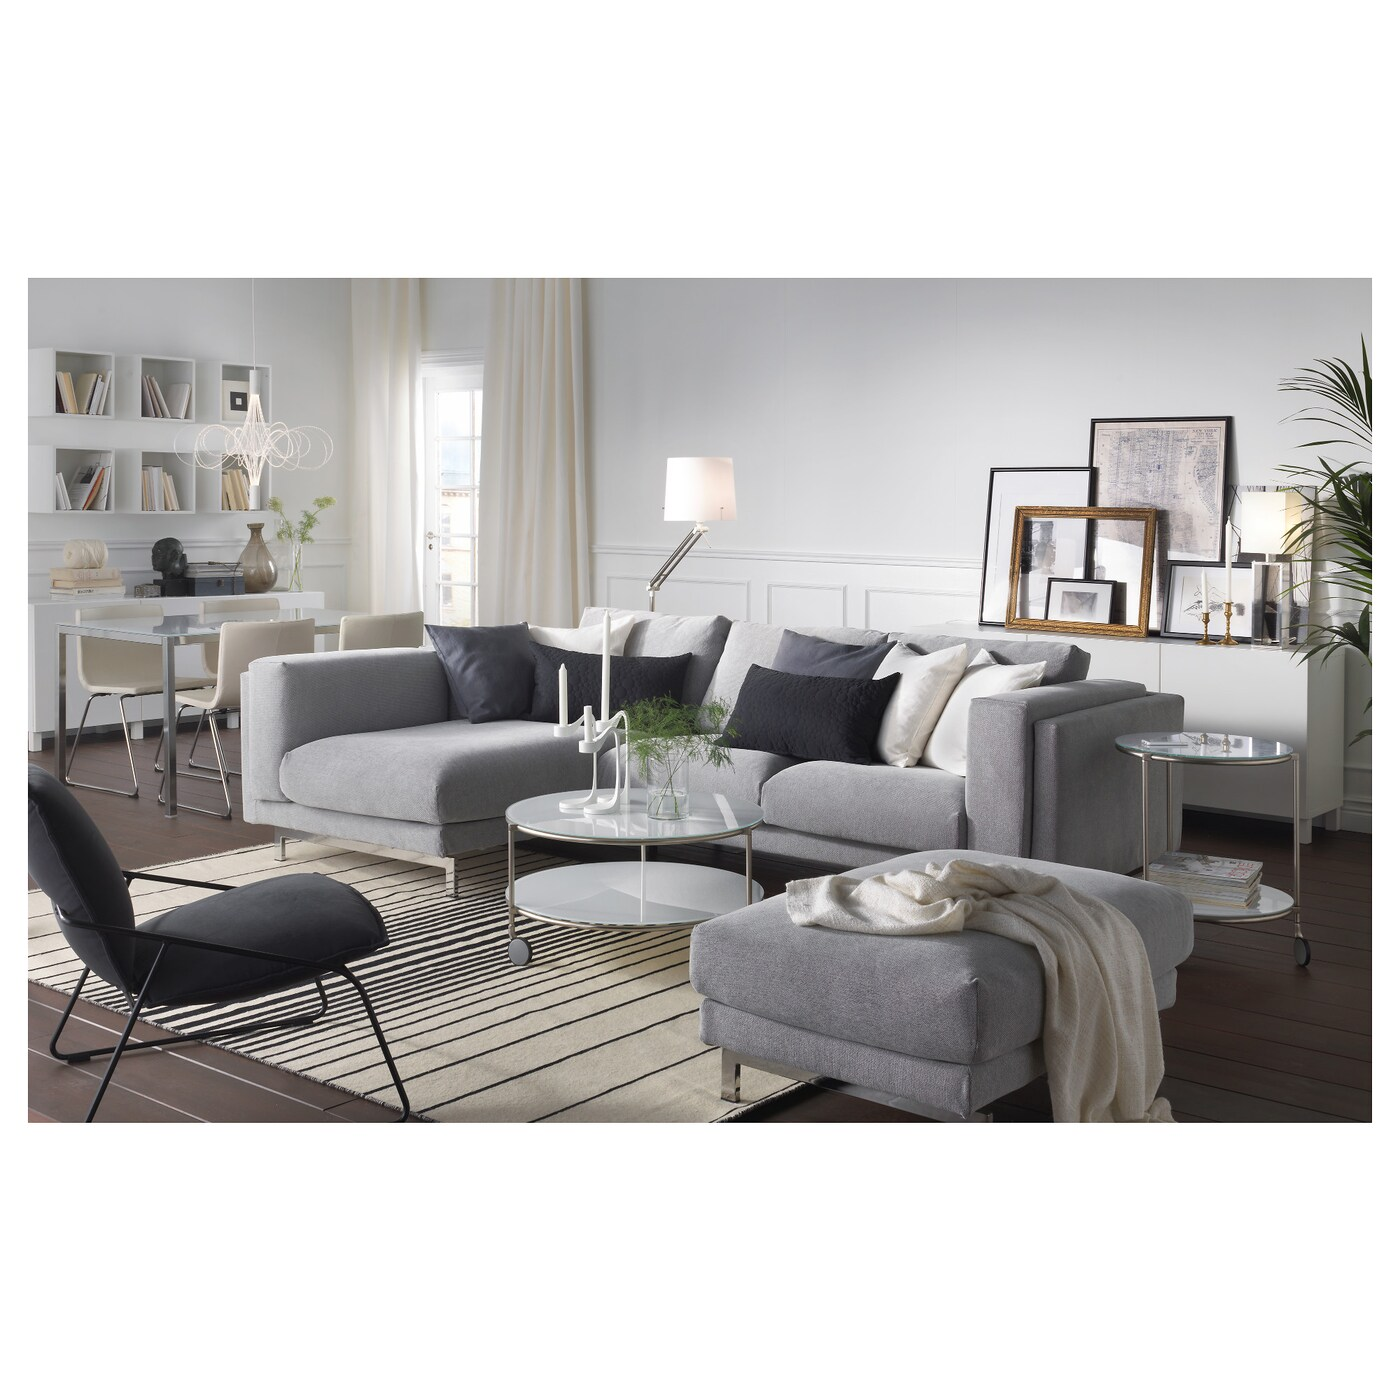 Ikea Nockeby Two Seat Sofa Nockeby Two Seat Sofa W Chaise Longue Left Tallmyra White